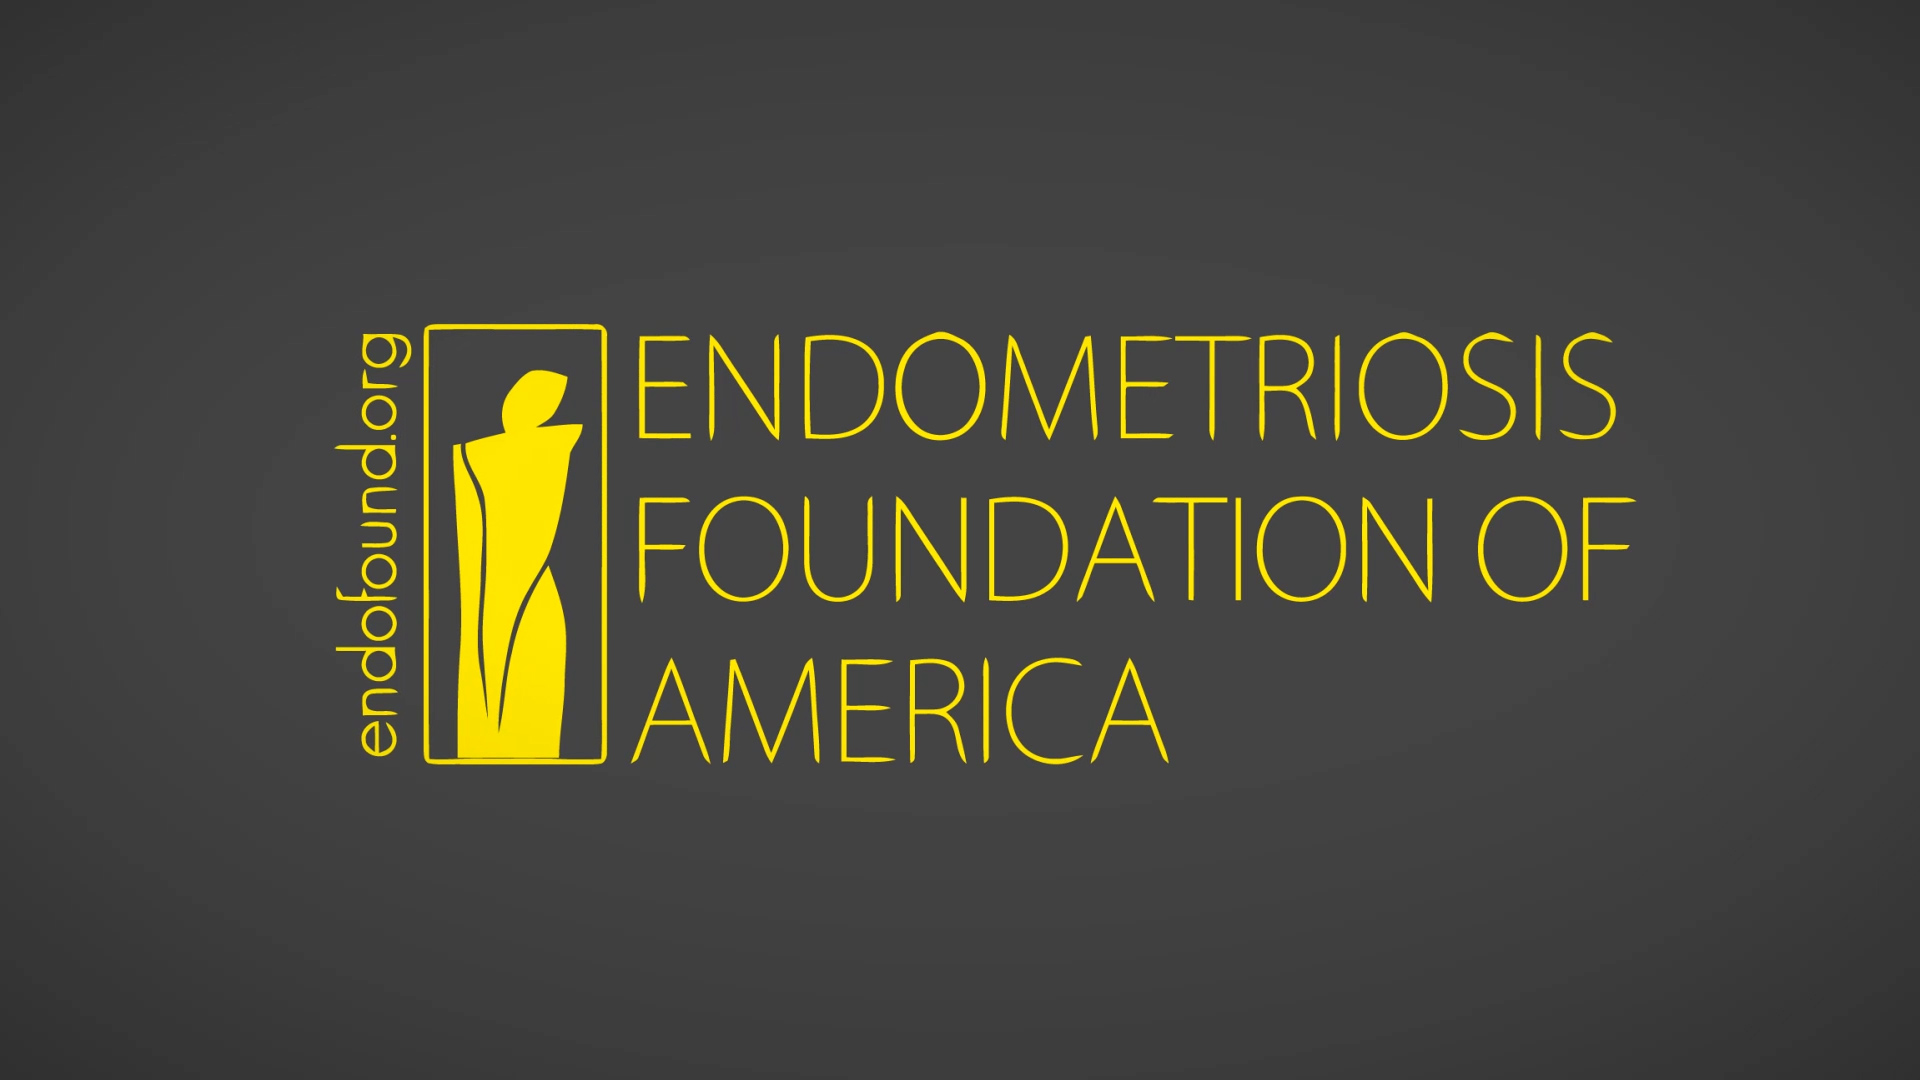 Endometriosis Foundation of America.jpg